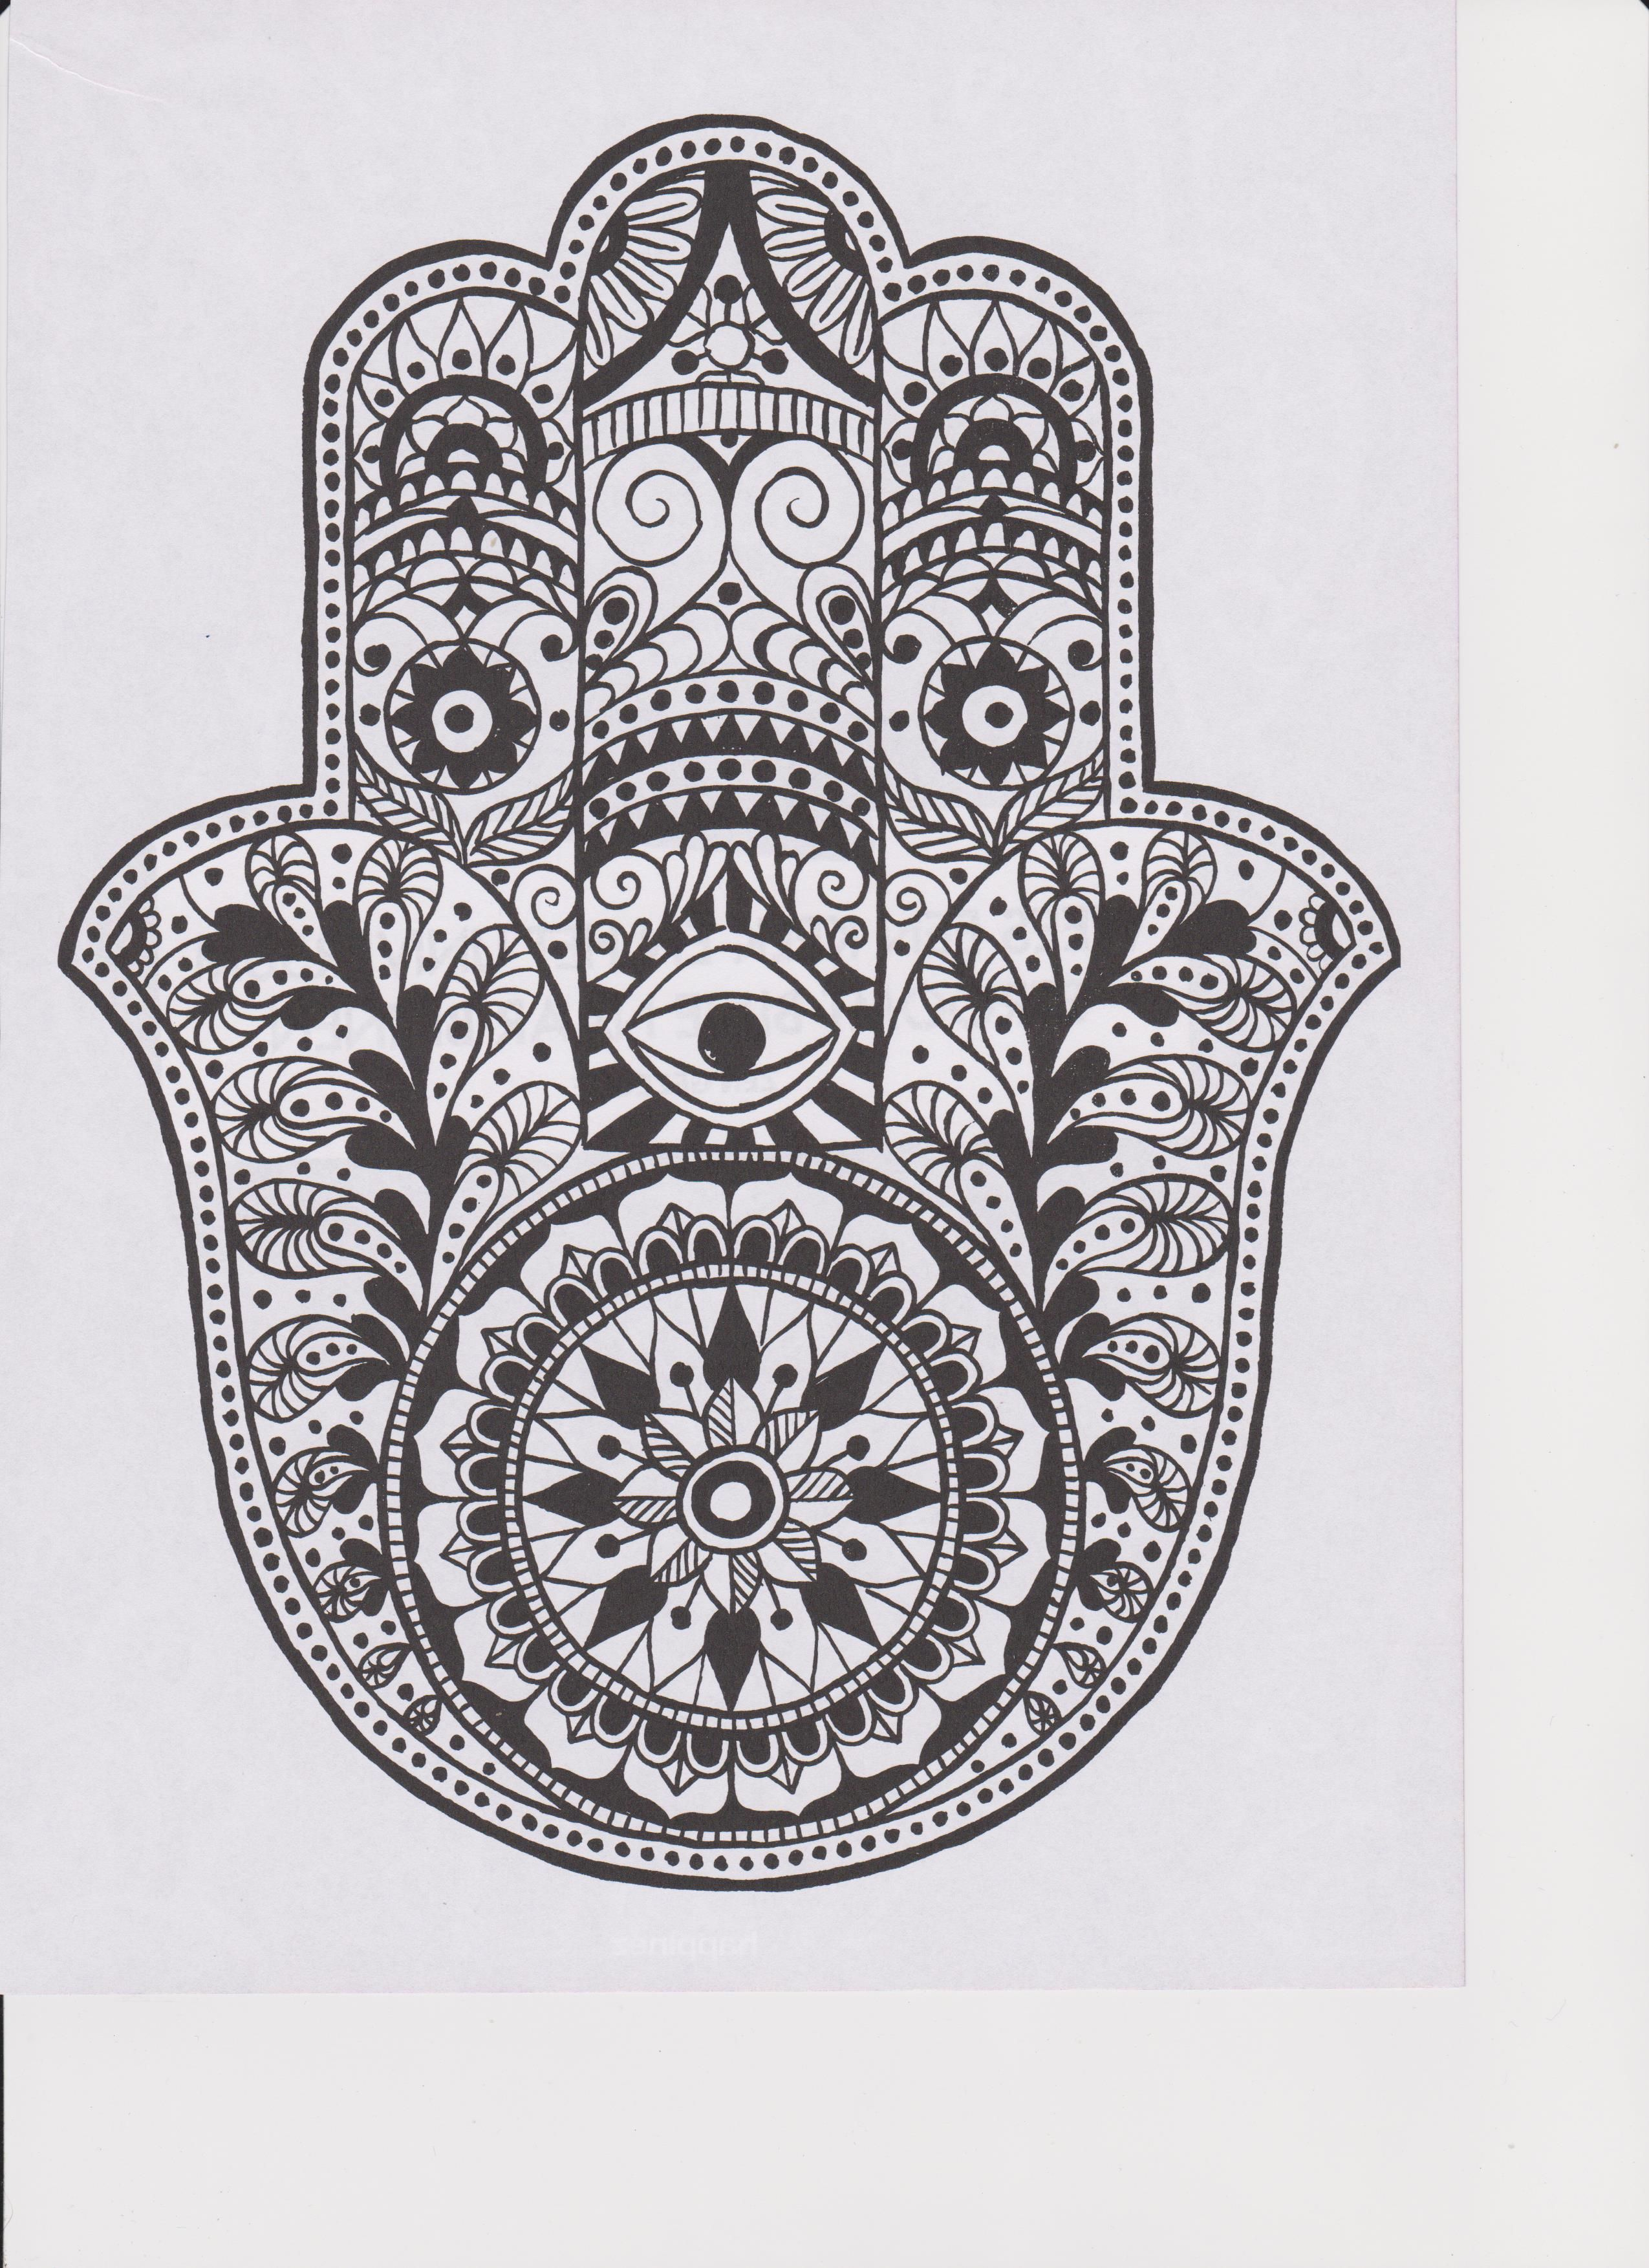 La Mano De Fatima Libro Pin De Danielle Wright En Coloring Pages Pinterest